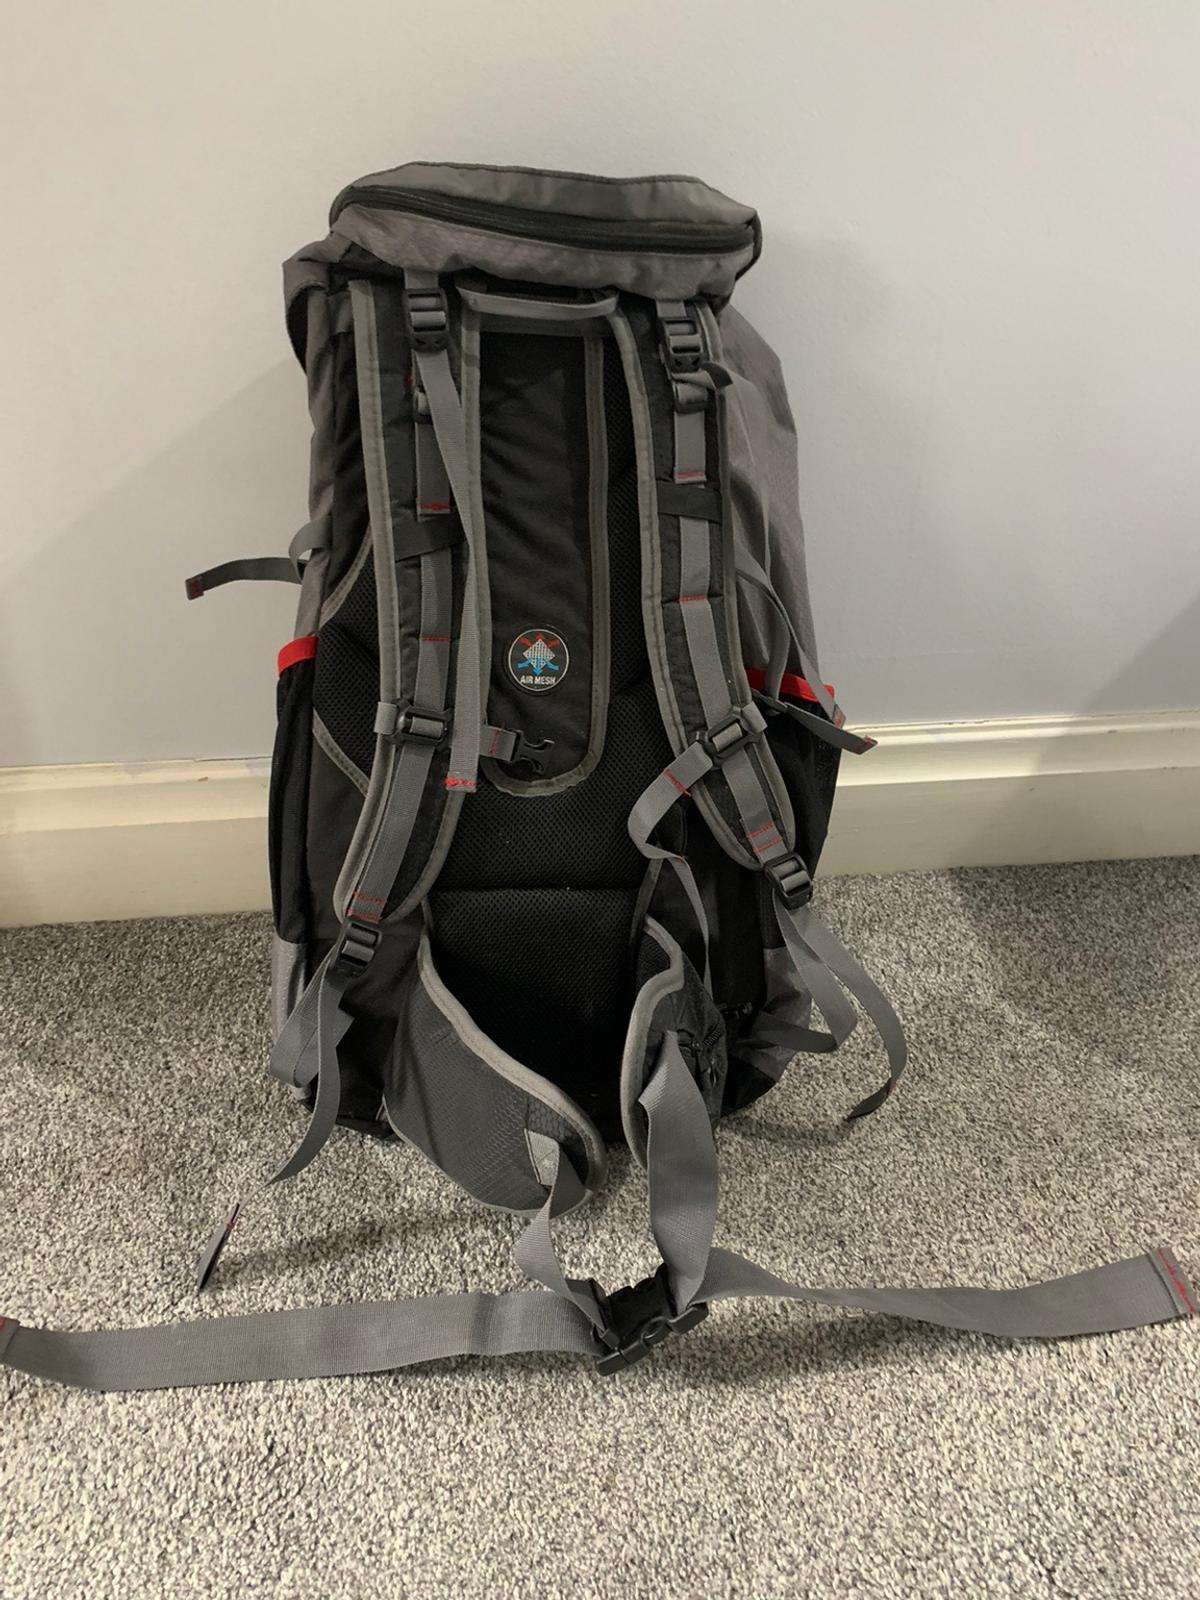 Extra large rucksack perfect for camping, festivals, travelling, hiking Used ONCE for camping at a festival, managed to fit everything in that I needed for 3 days Adjustable straps and clips Will keep belongings safe and secure Comfortable to wear